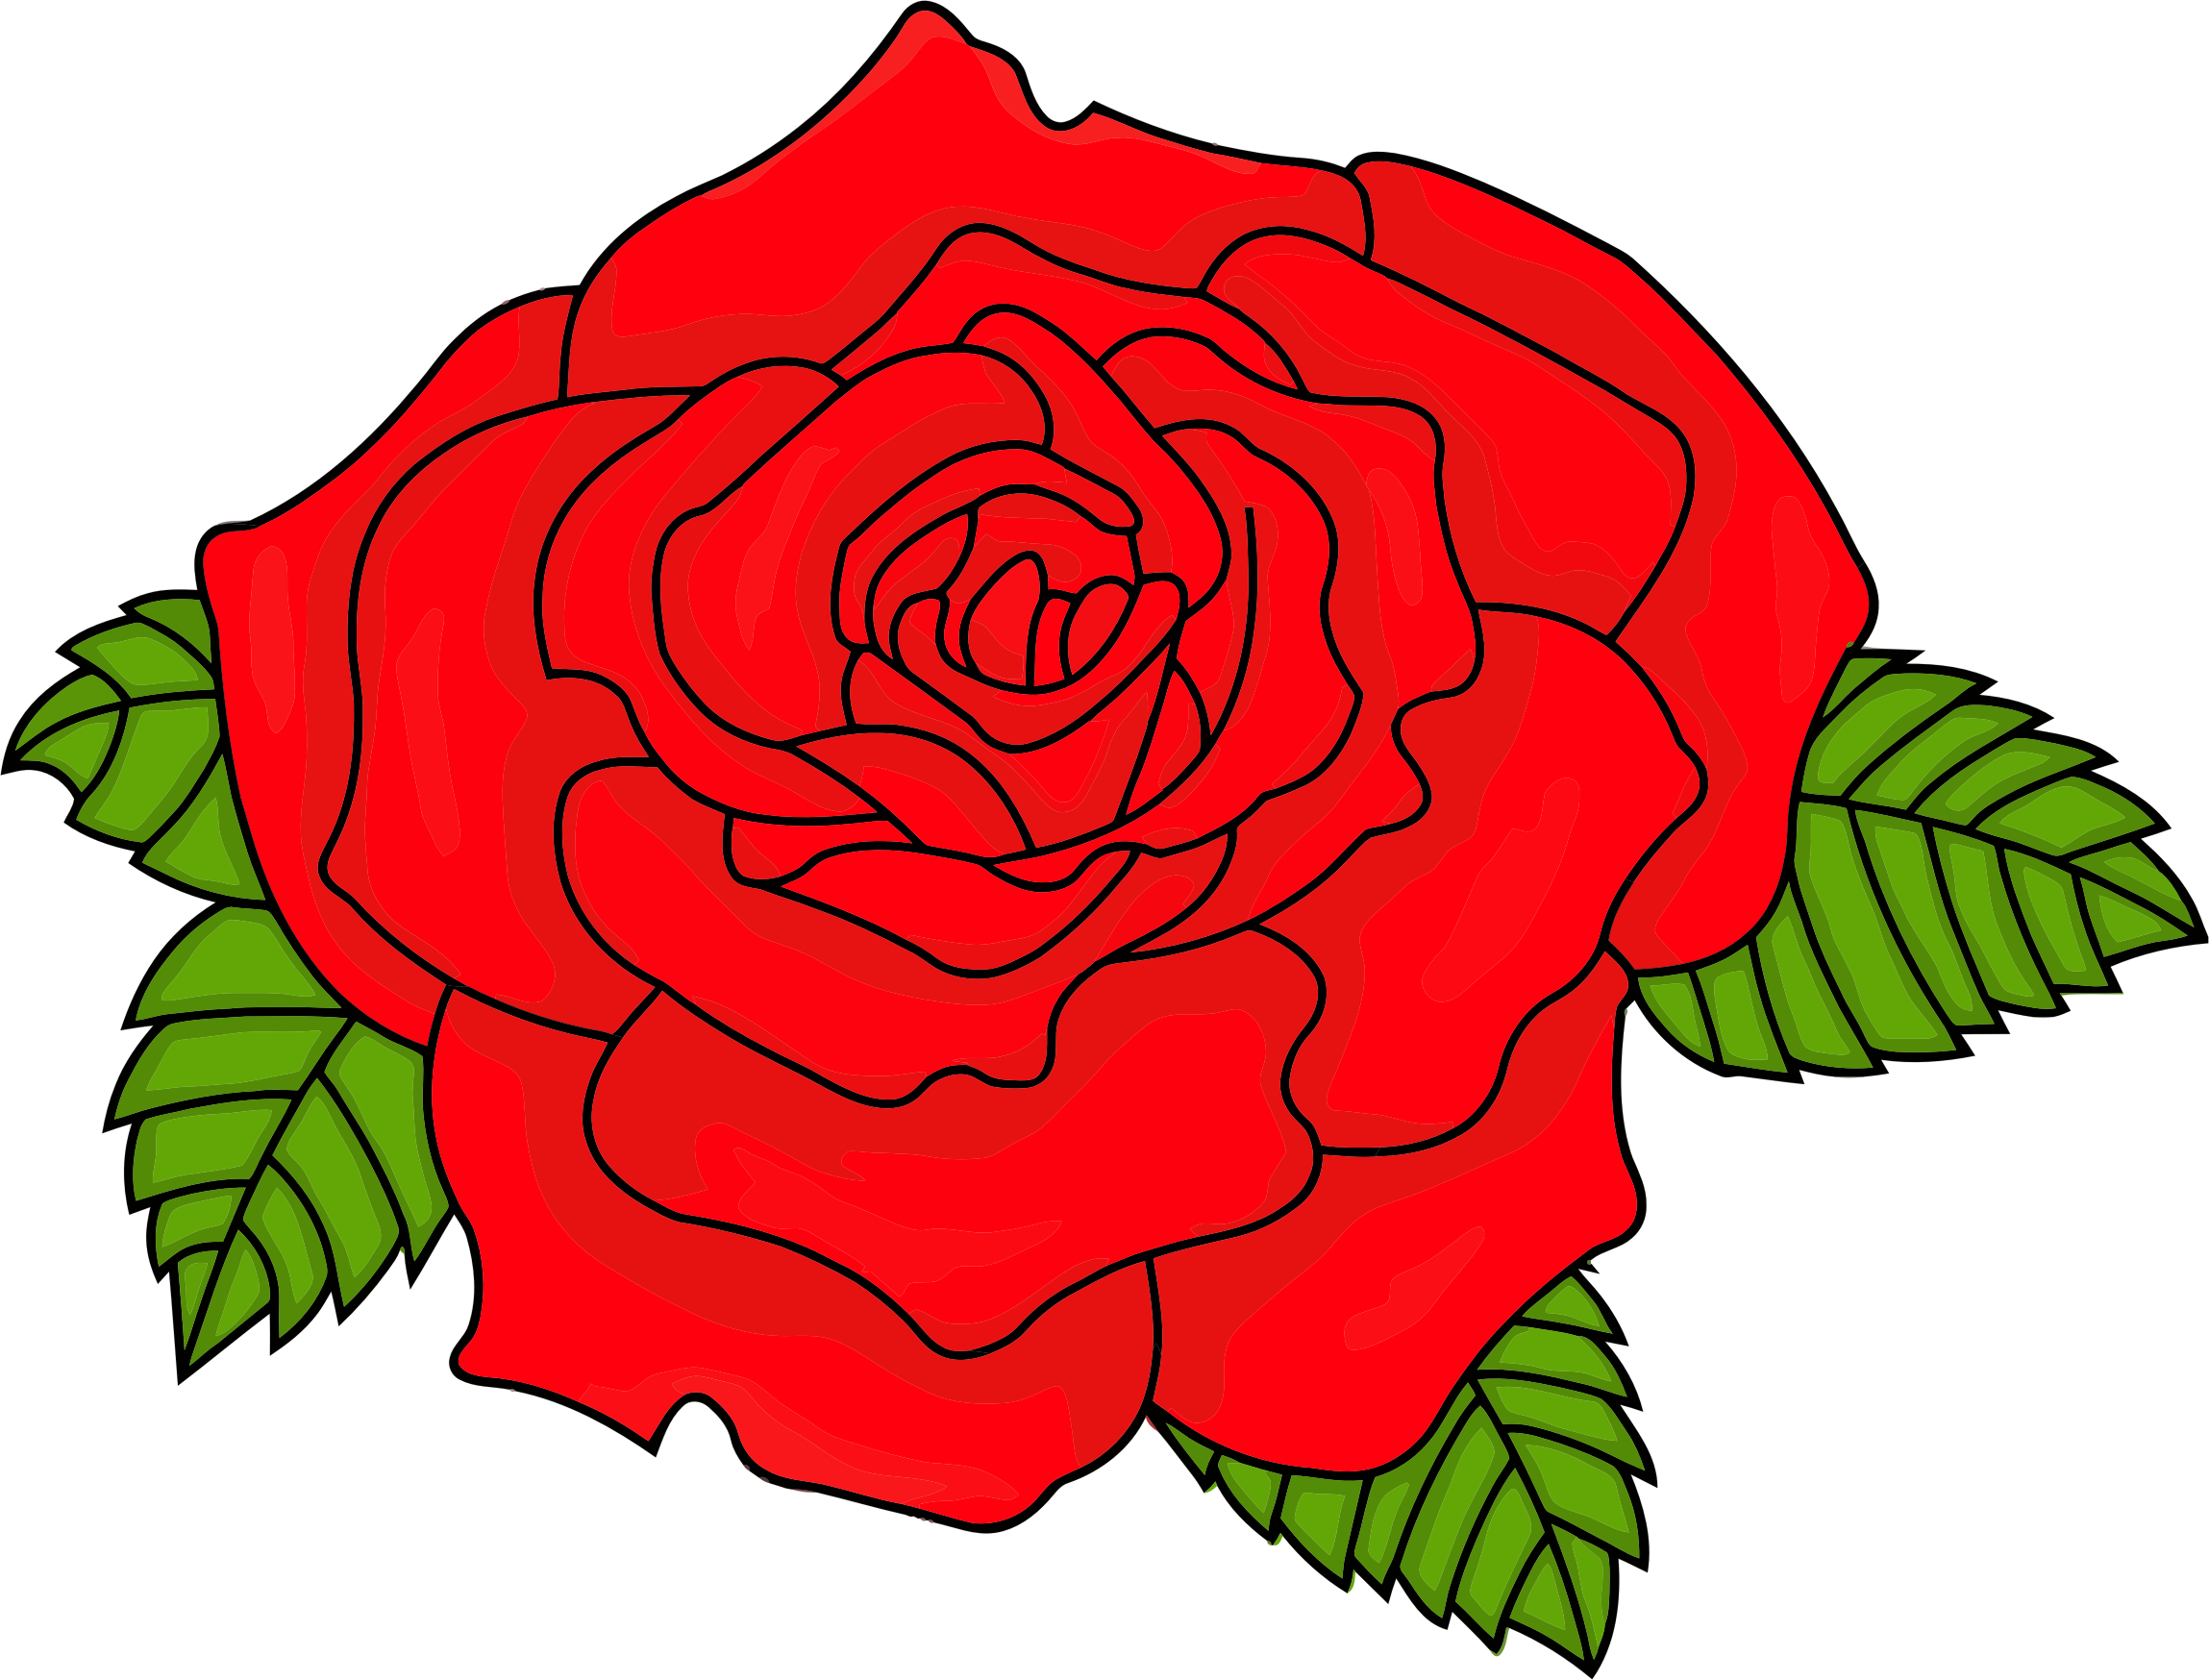 Shaded Red Rose by GDJ